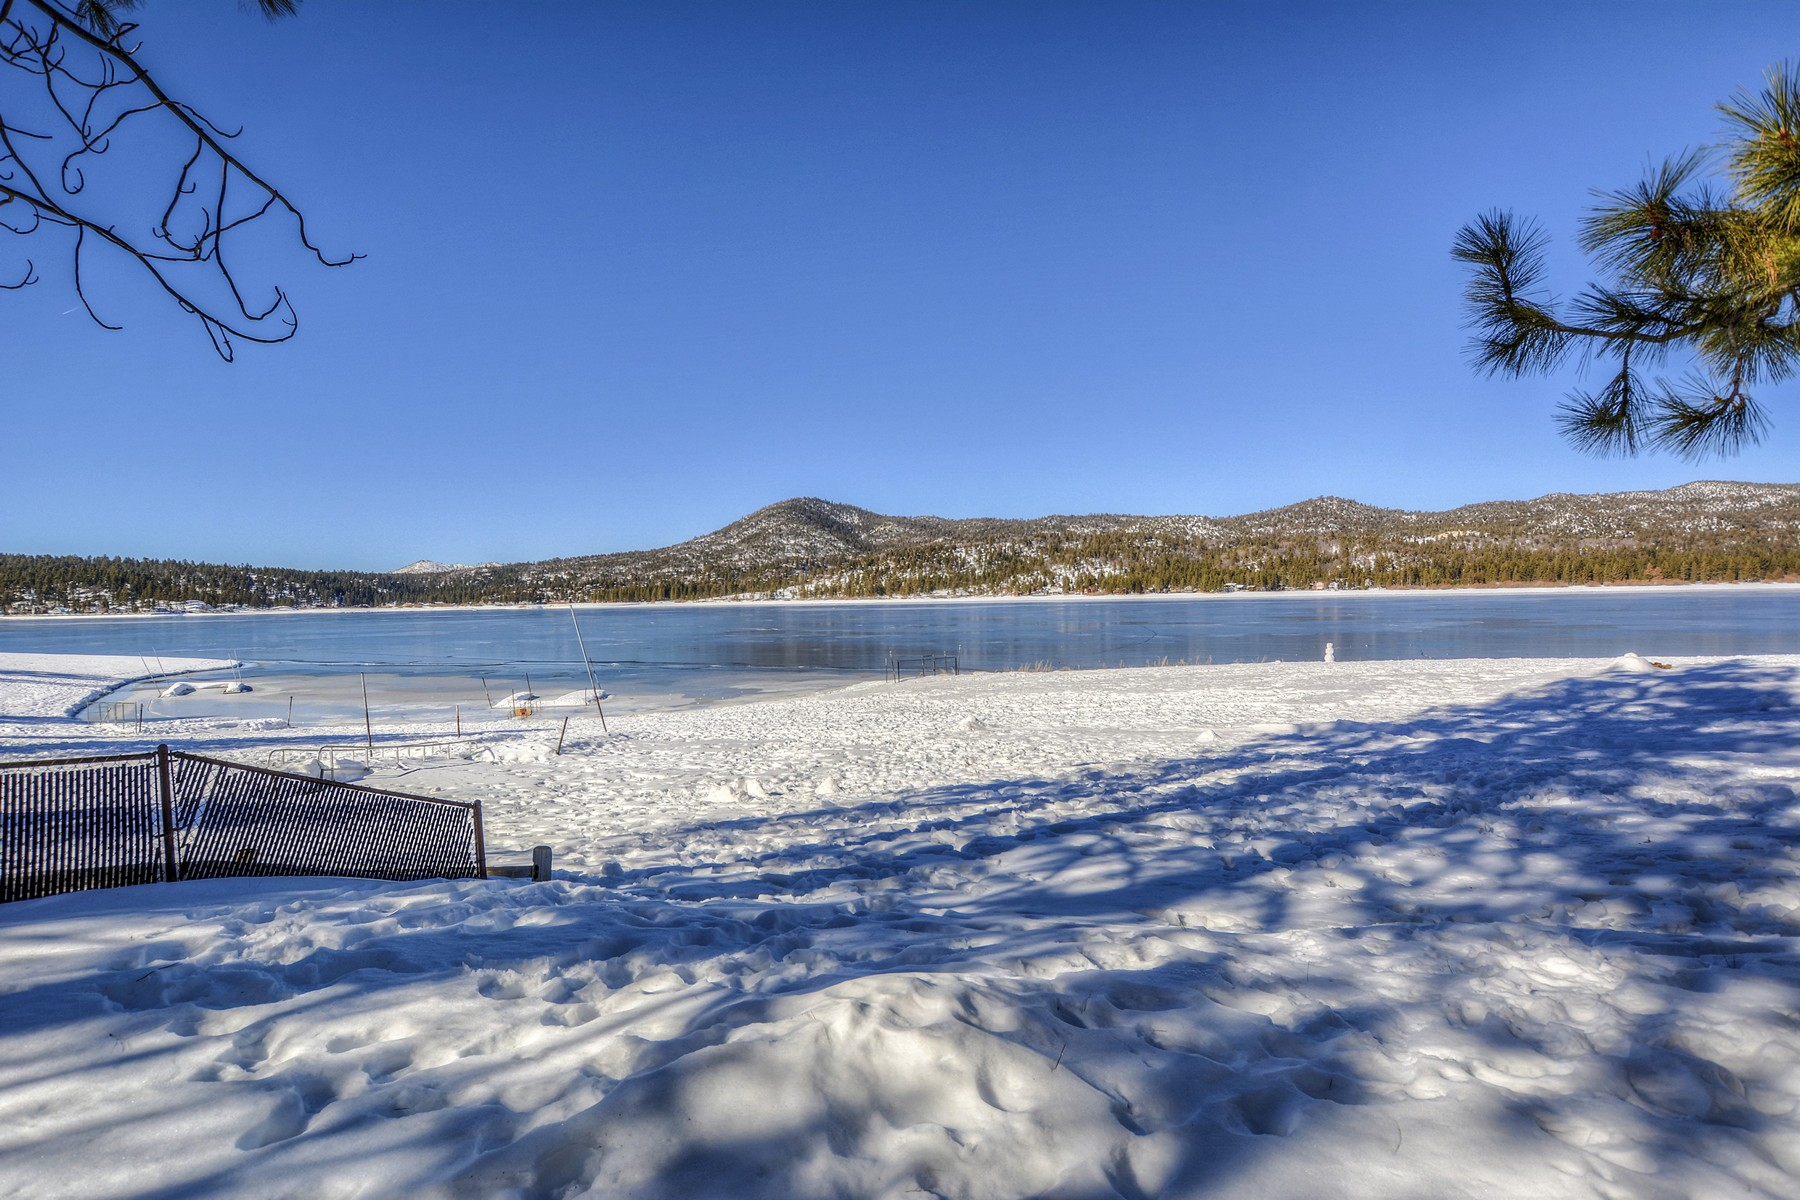 Single Family Home for Sale at Big Bear 155 Lagunita Big Bear Lake, California 92315 United States